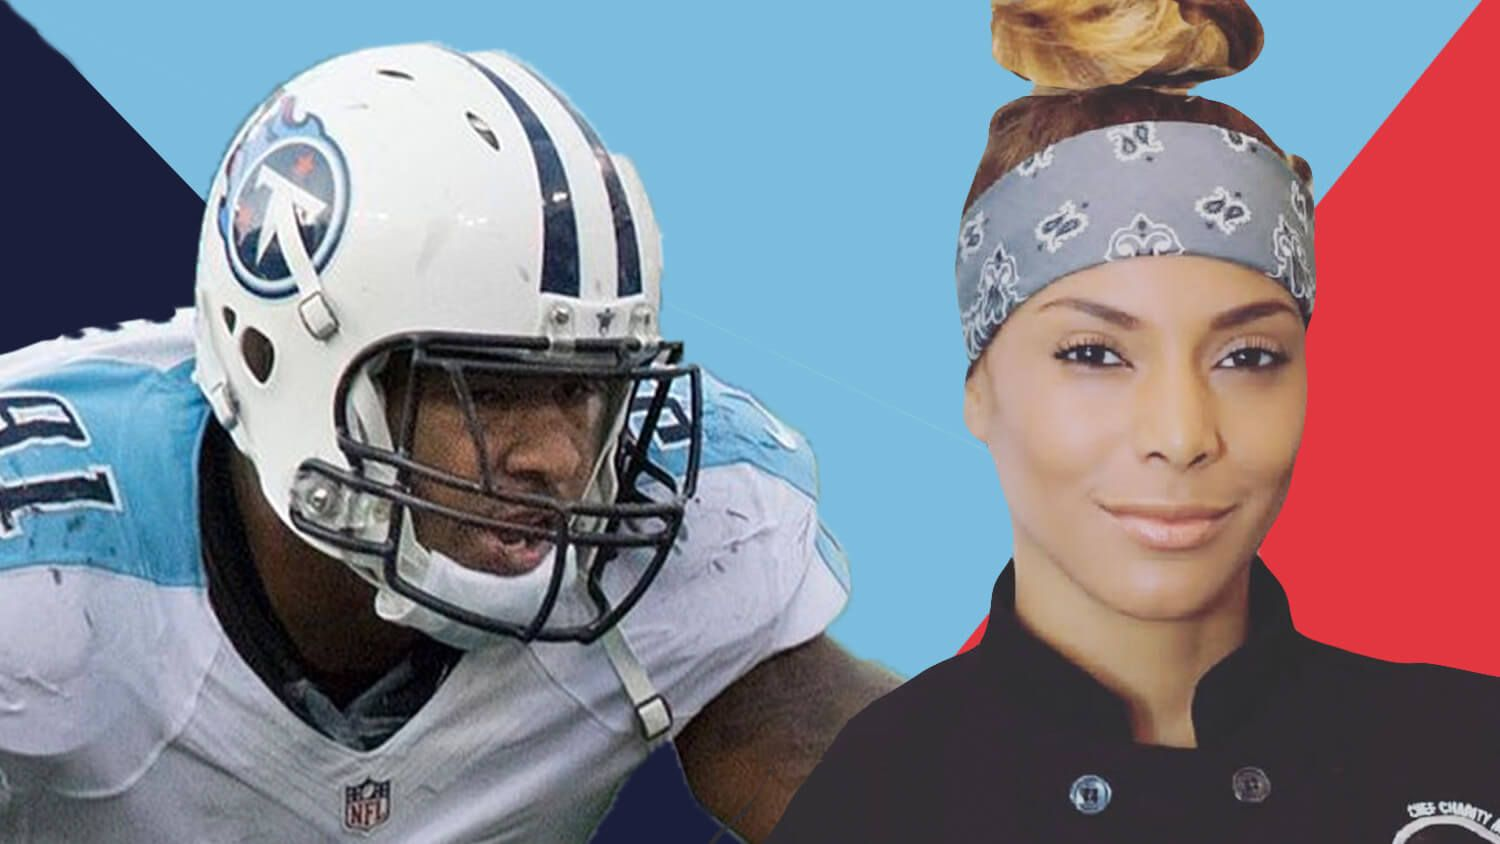 One female chef helps 15 nfl players adopt a vegan diet